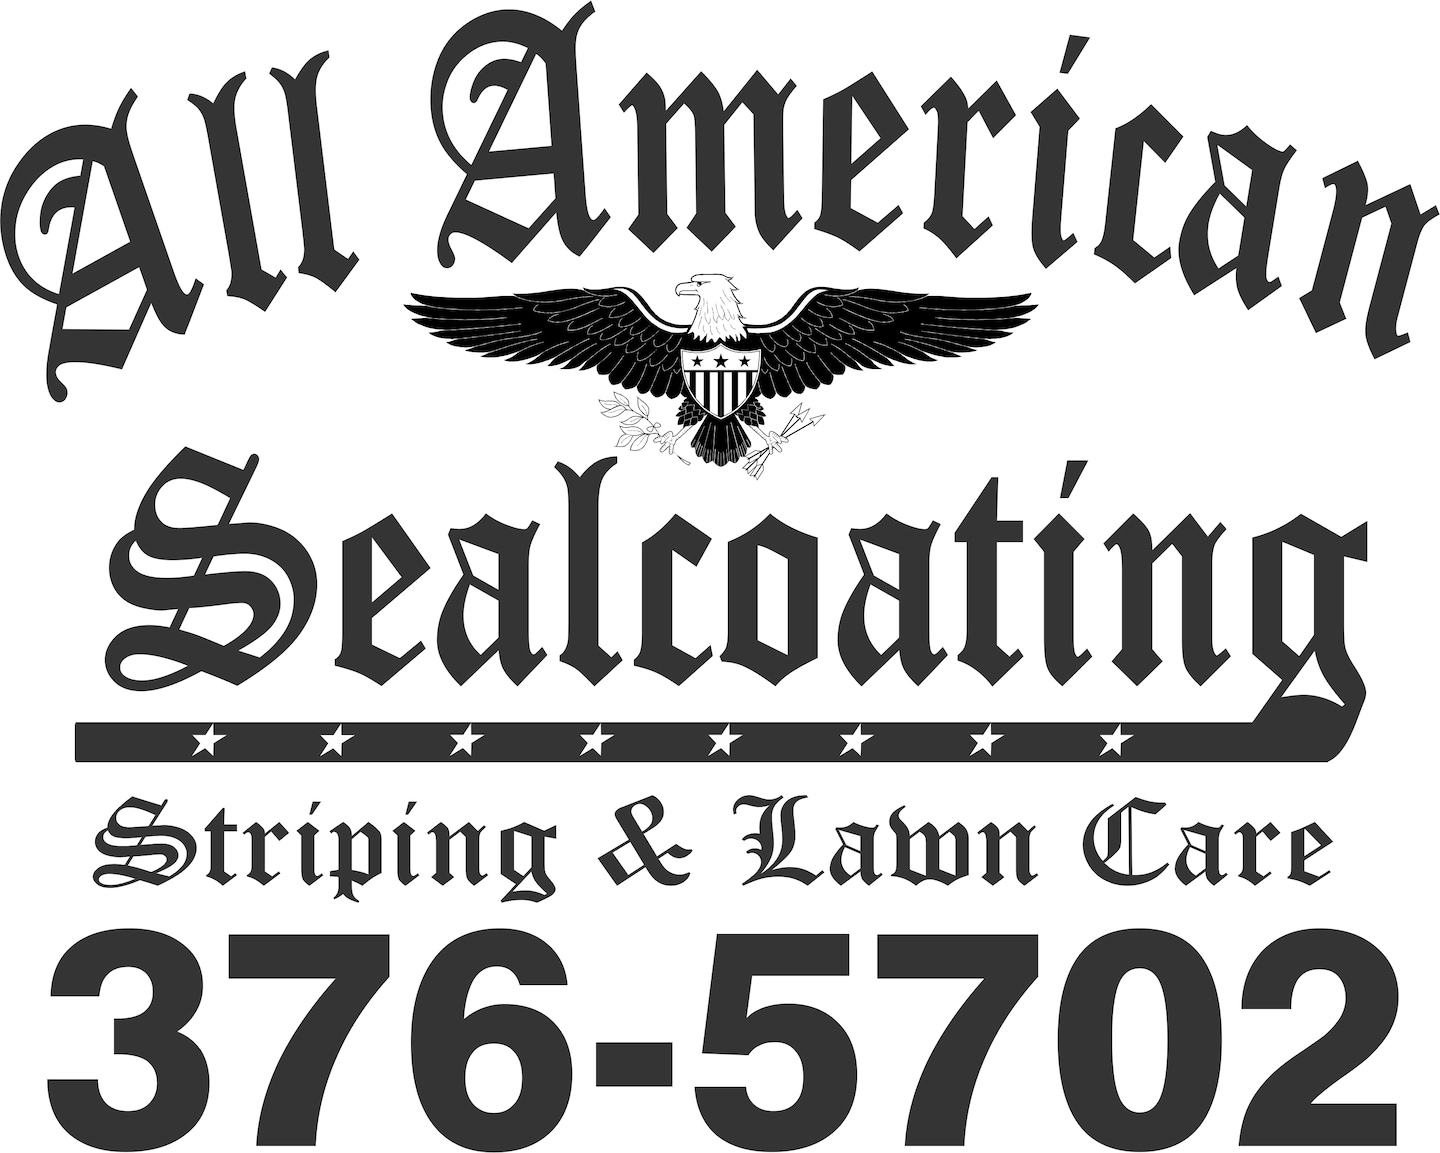 All American Seal Coating Striping & Lawn Care